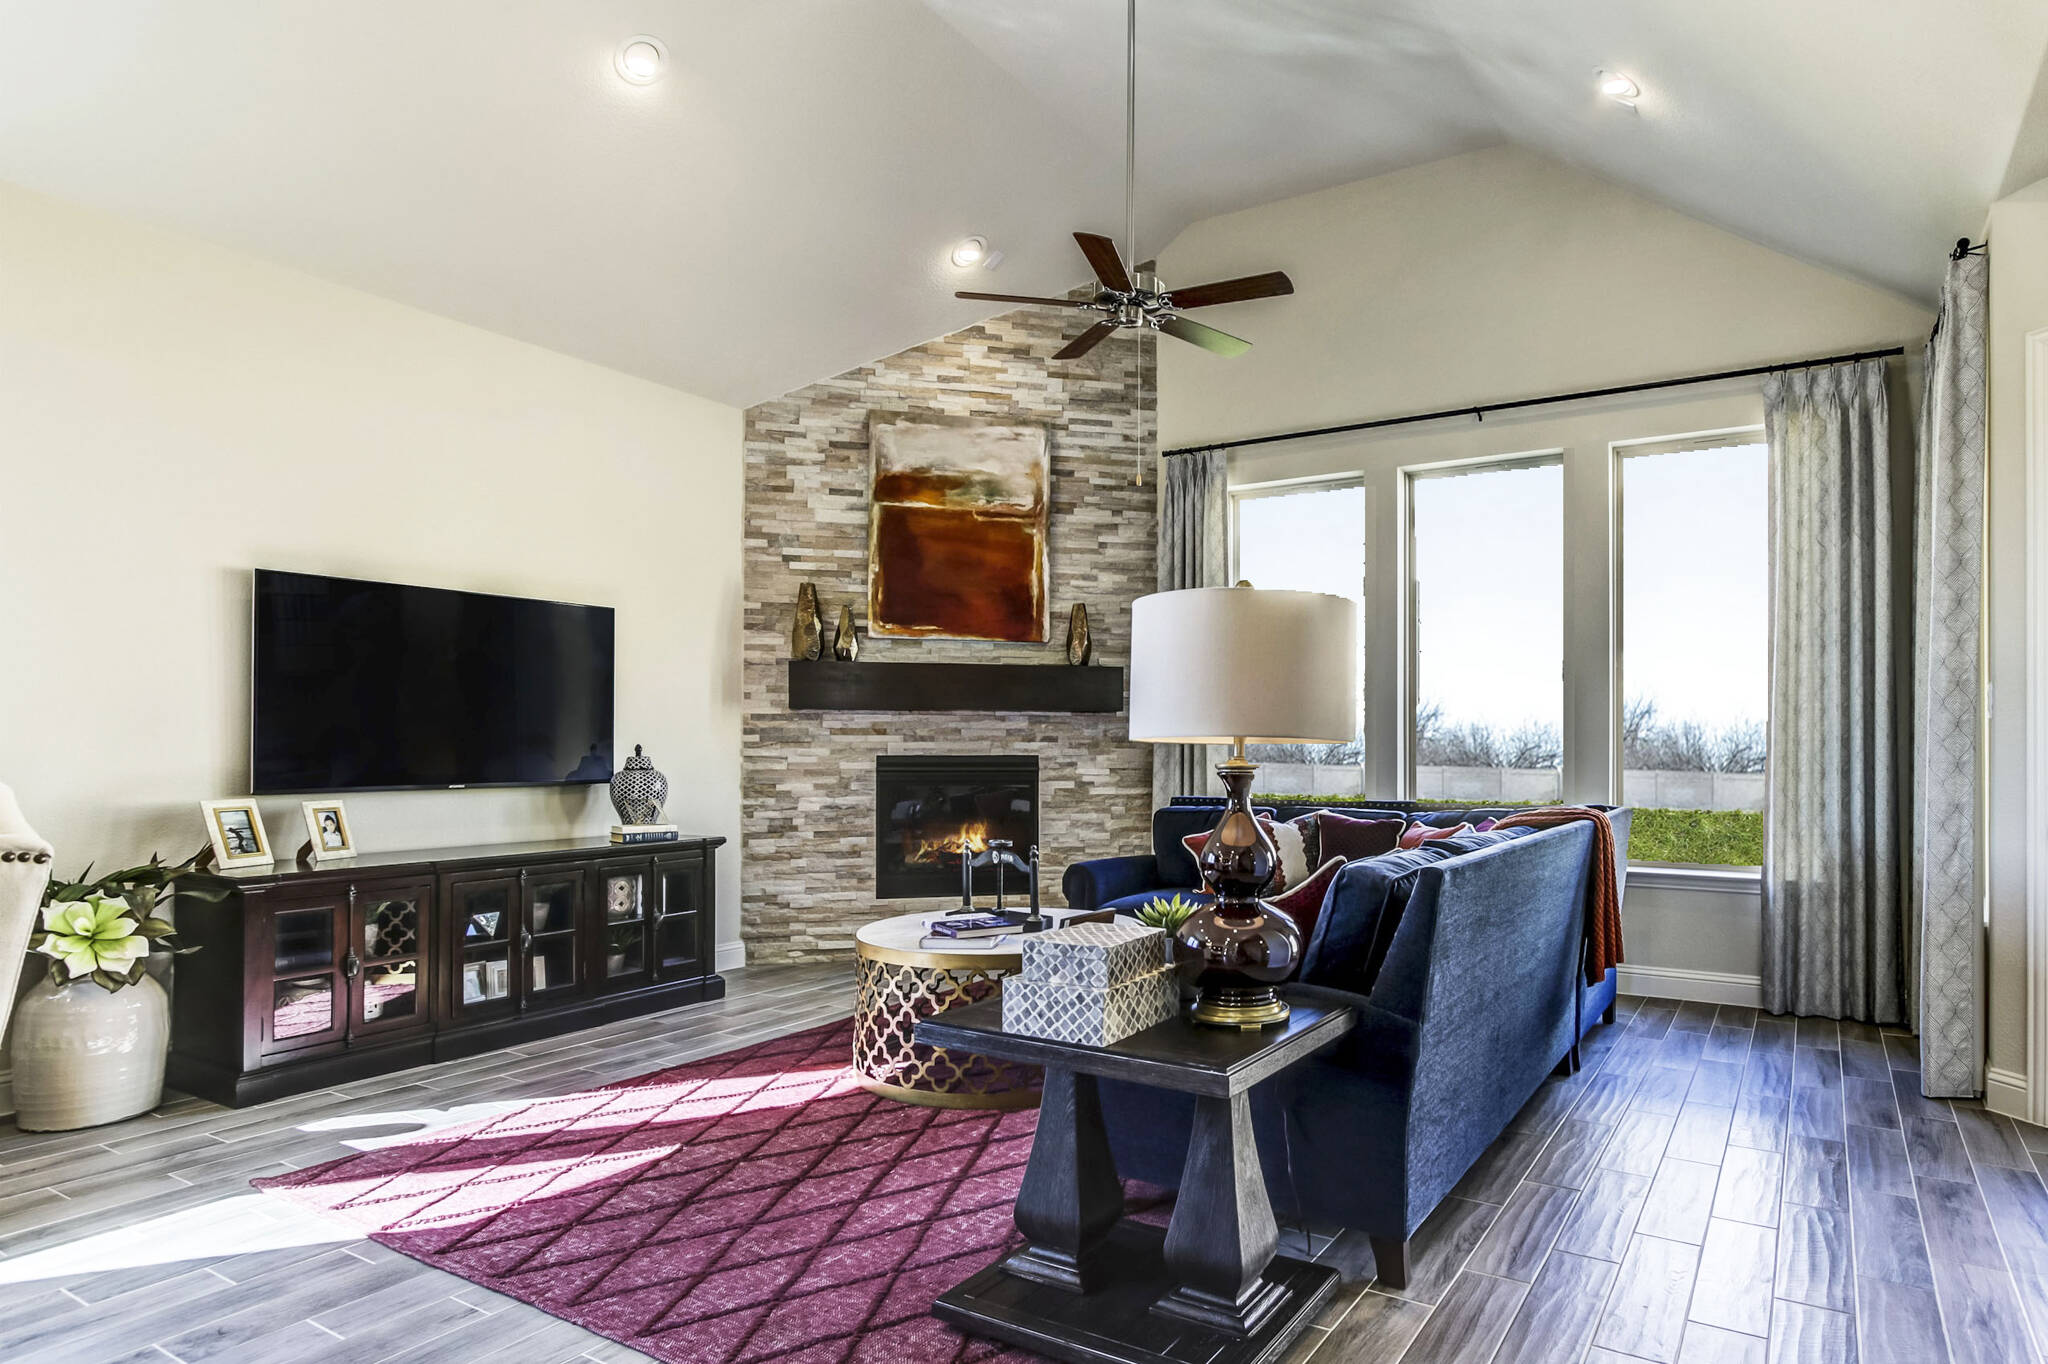 2069 Remington_Davison_Villas at Mustang Park_MODEL 2048x1364 018_family room